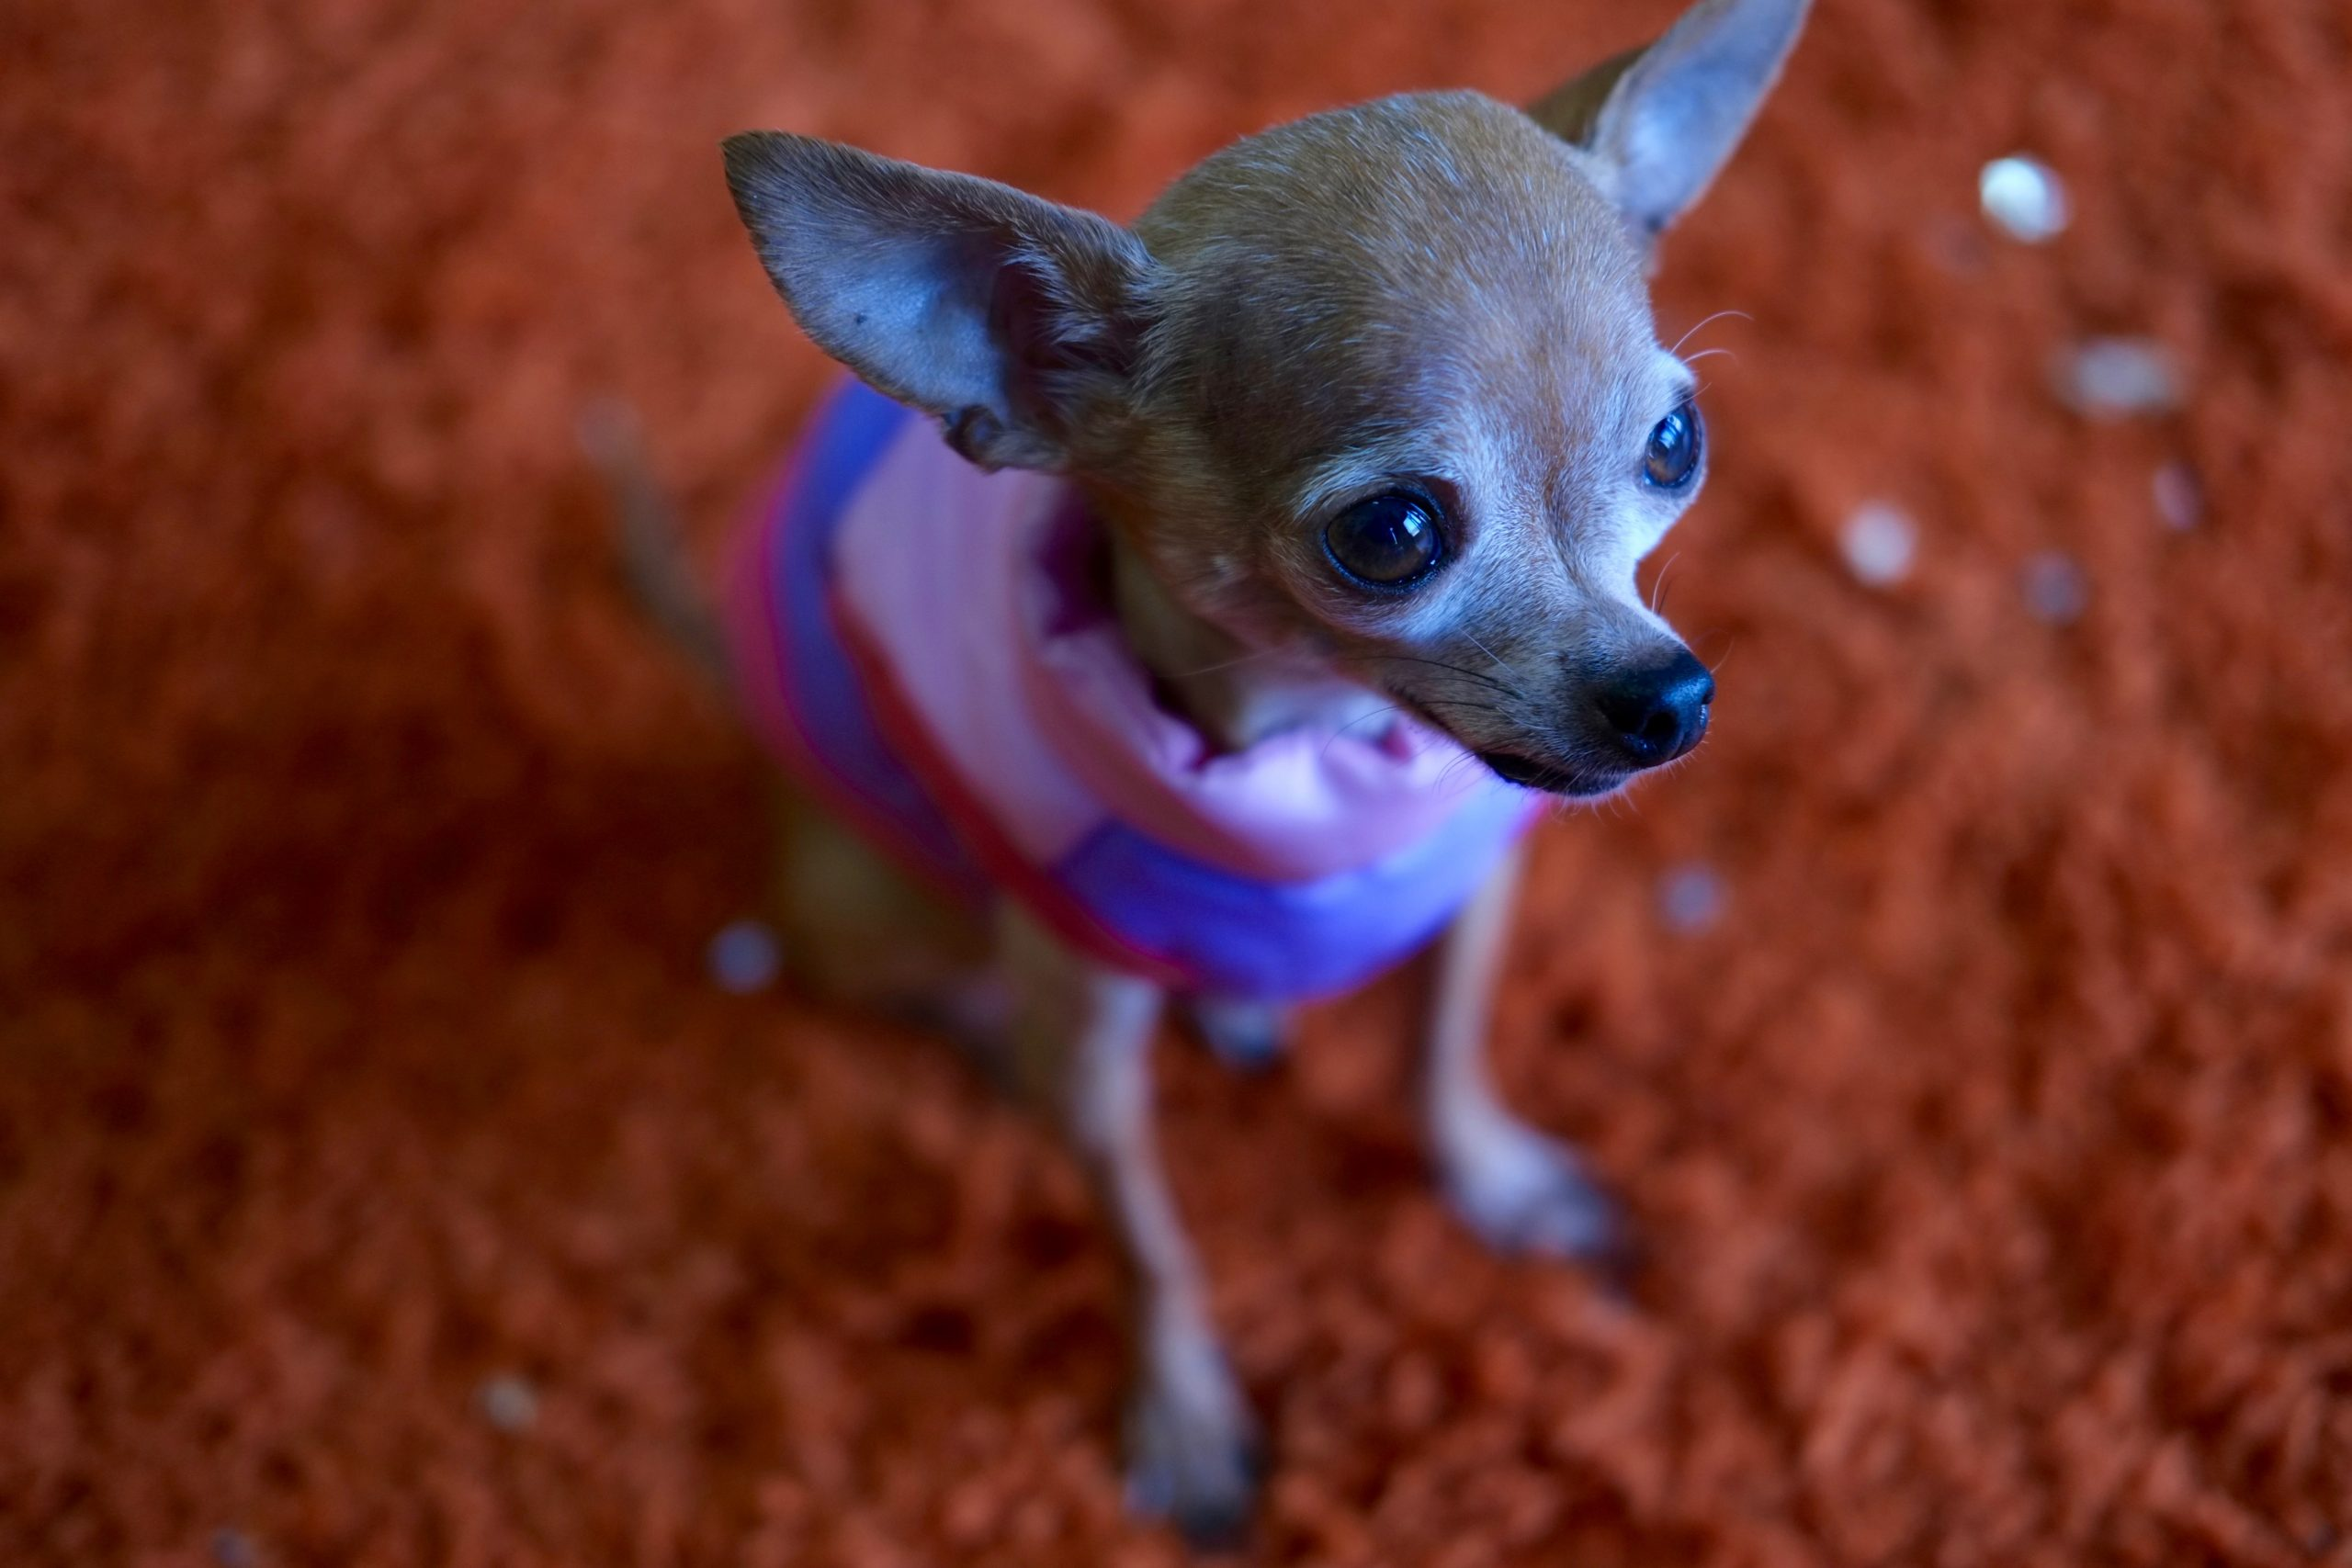 """Strummer, a two-pound chihuahua owner Melissa Elliott rescued from the streets, now greets the customers with """"tiny barks,"""" she says."""